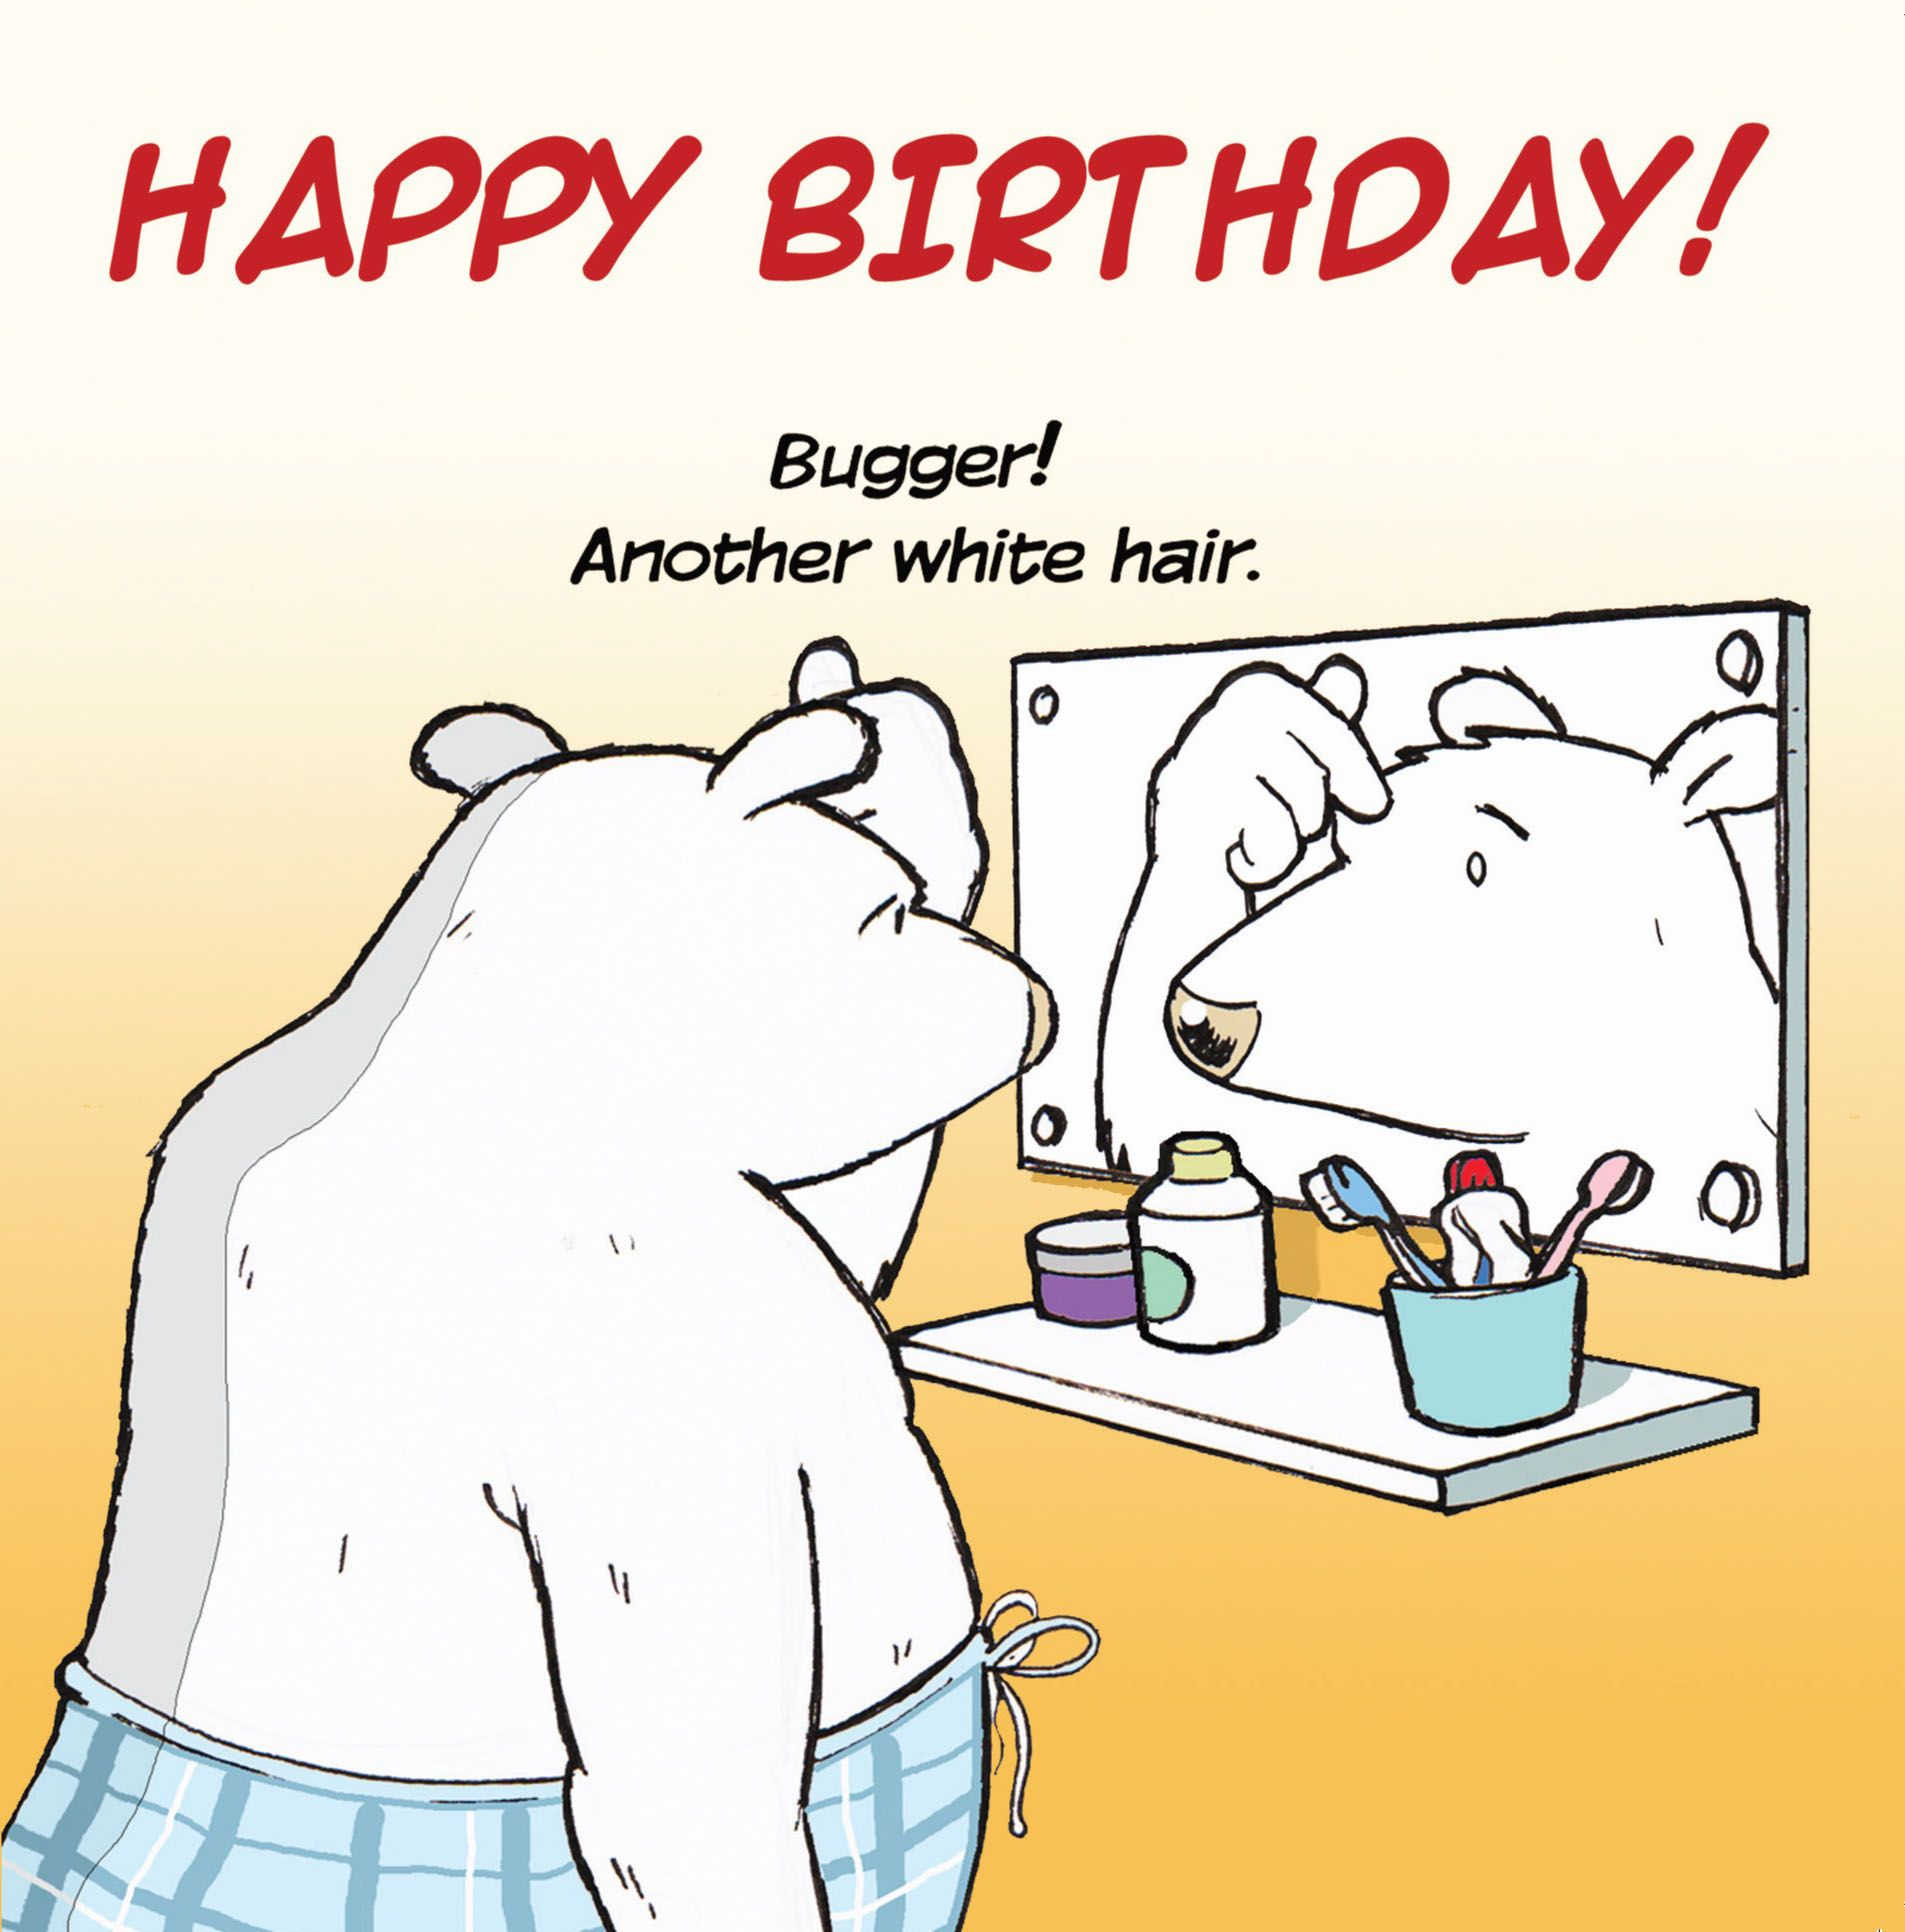 Funny Birthday Cards. Funny Cards. Funny Happy Birthday Cards. Humorous Greeting Cards. Twizler